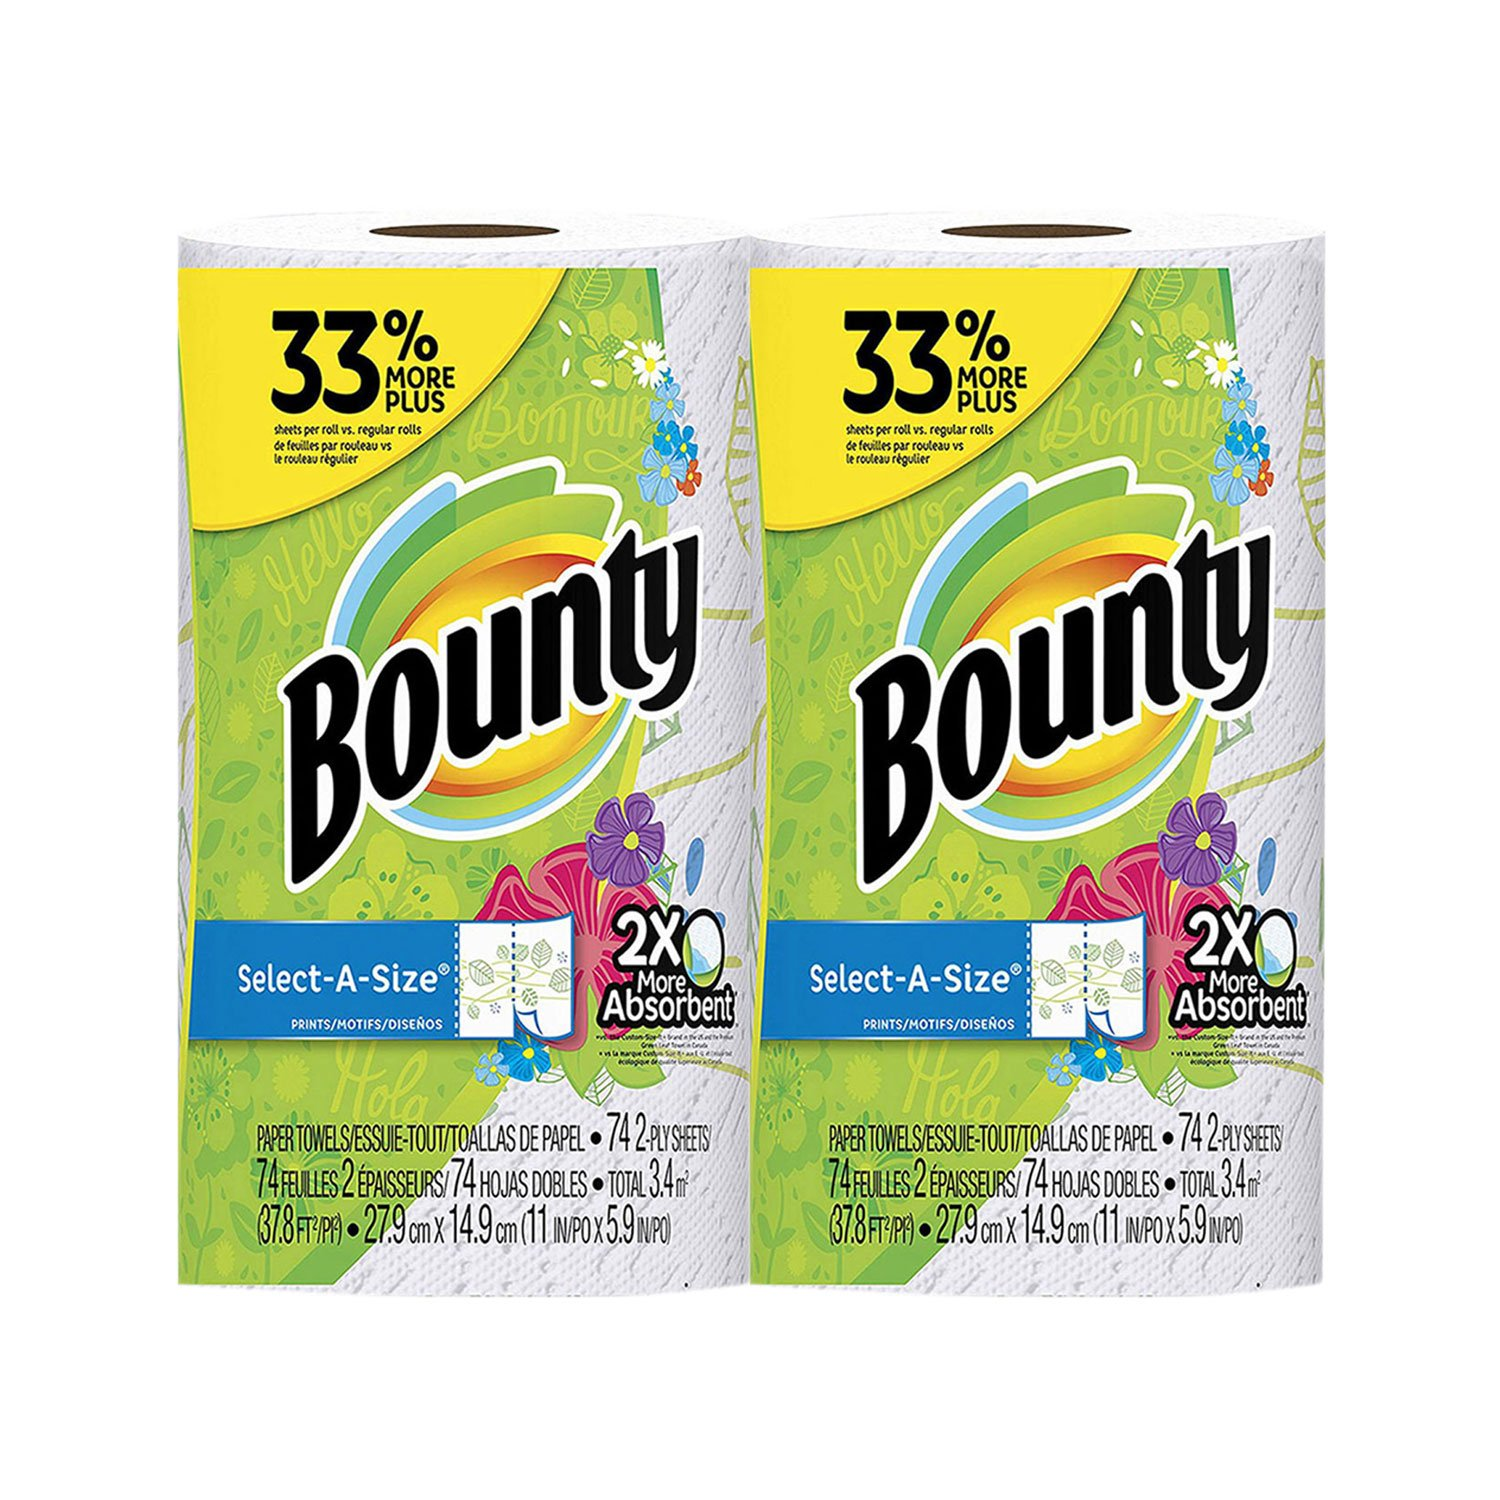 Amazon.com: Bounty Select-A-Size, 2x More Absorbent 2-ply 74 sheets Paper Towel big Roll - 2-Pack: Health & Personal Care